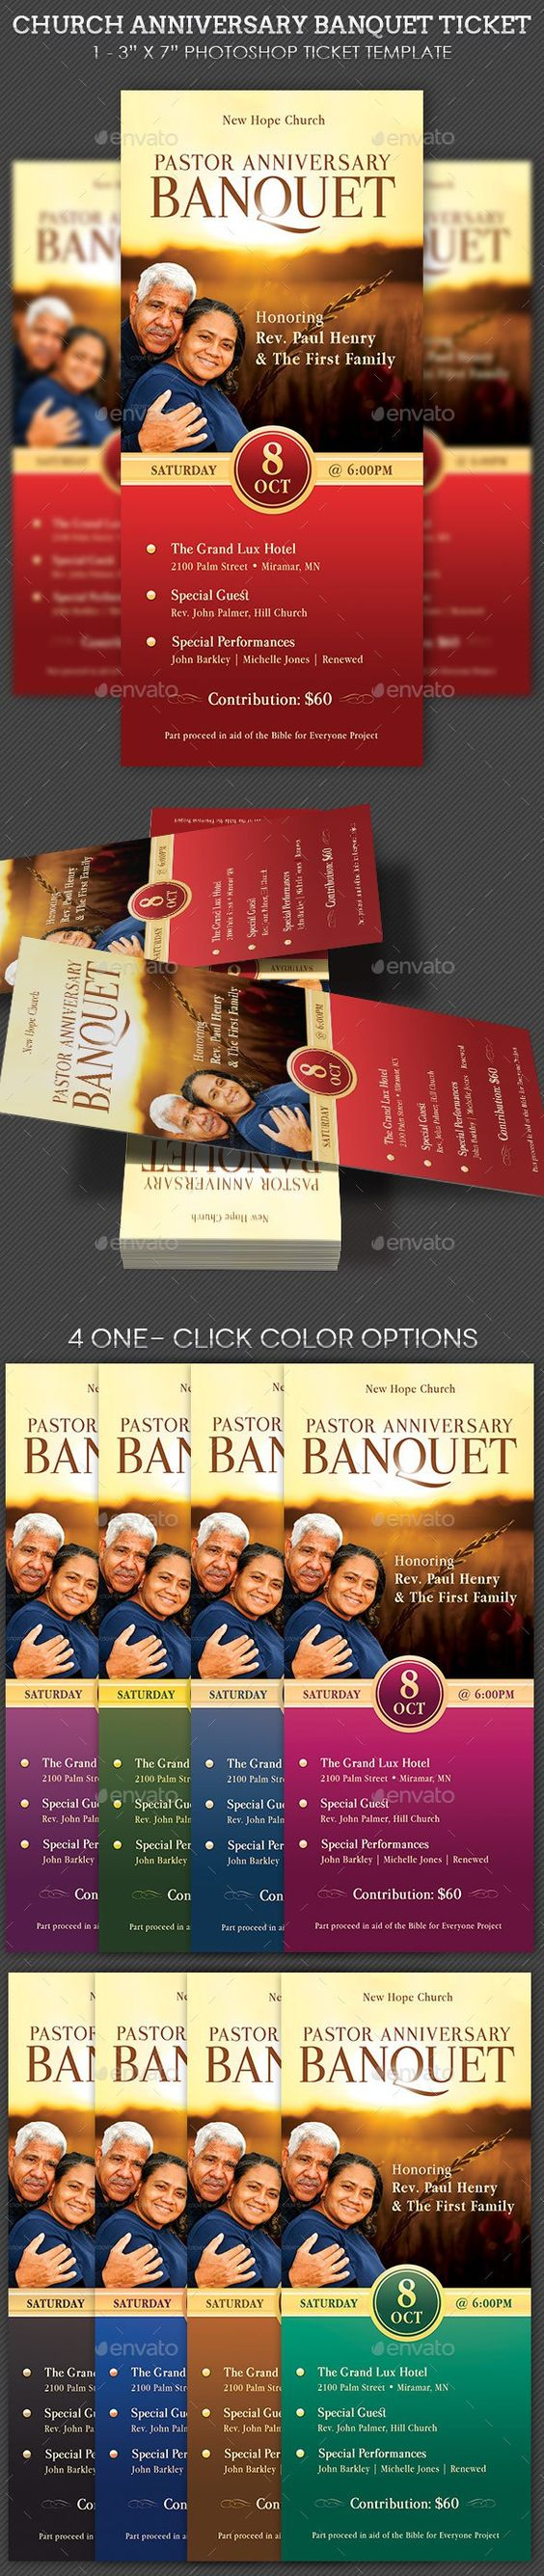 Pastor anniversary banquet ticket template miscellaneous print pastor anniversary banquet ticket template miscellaneous print templates ticket print templates pinterest pronofoot35fo Choice Image